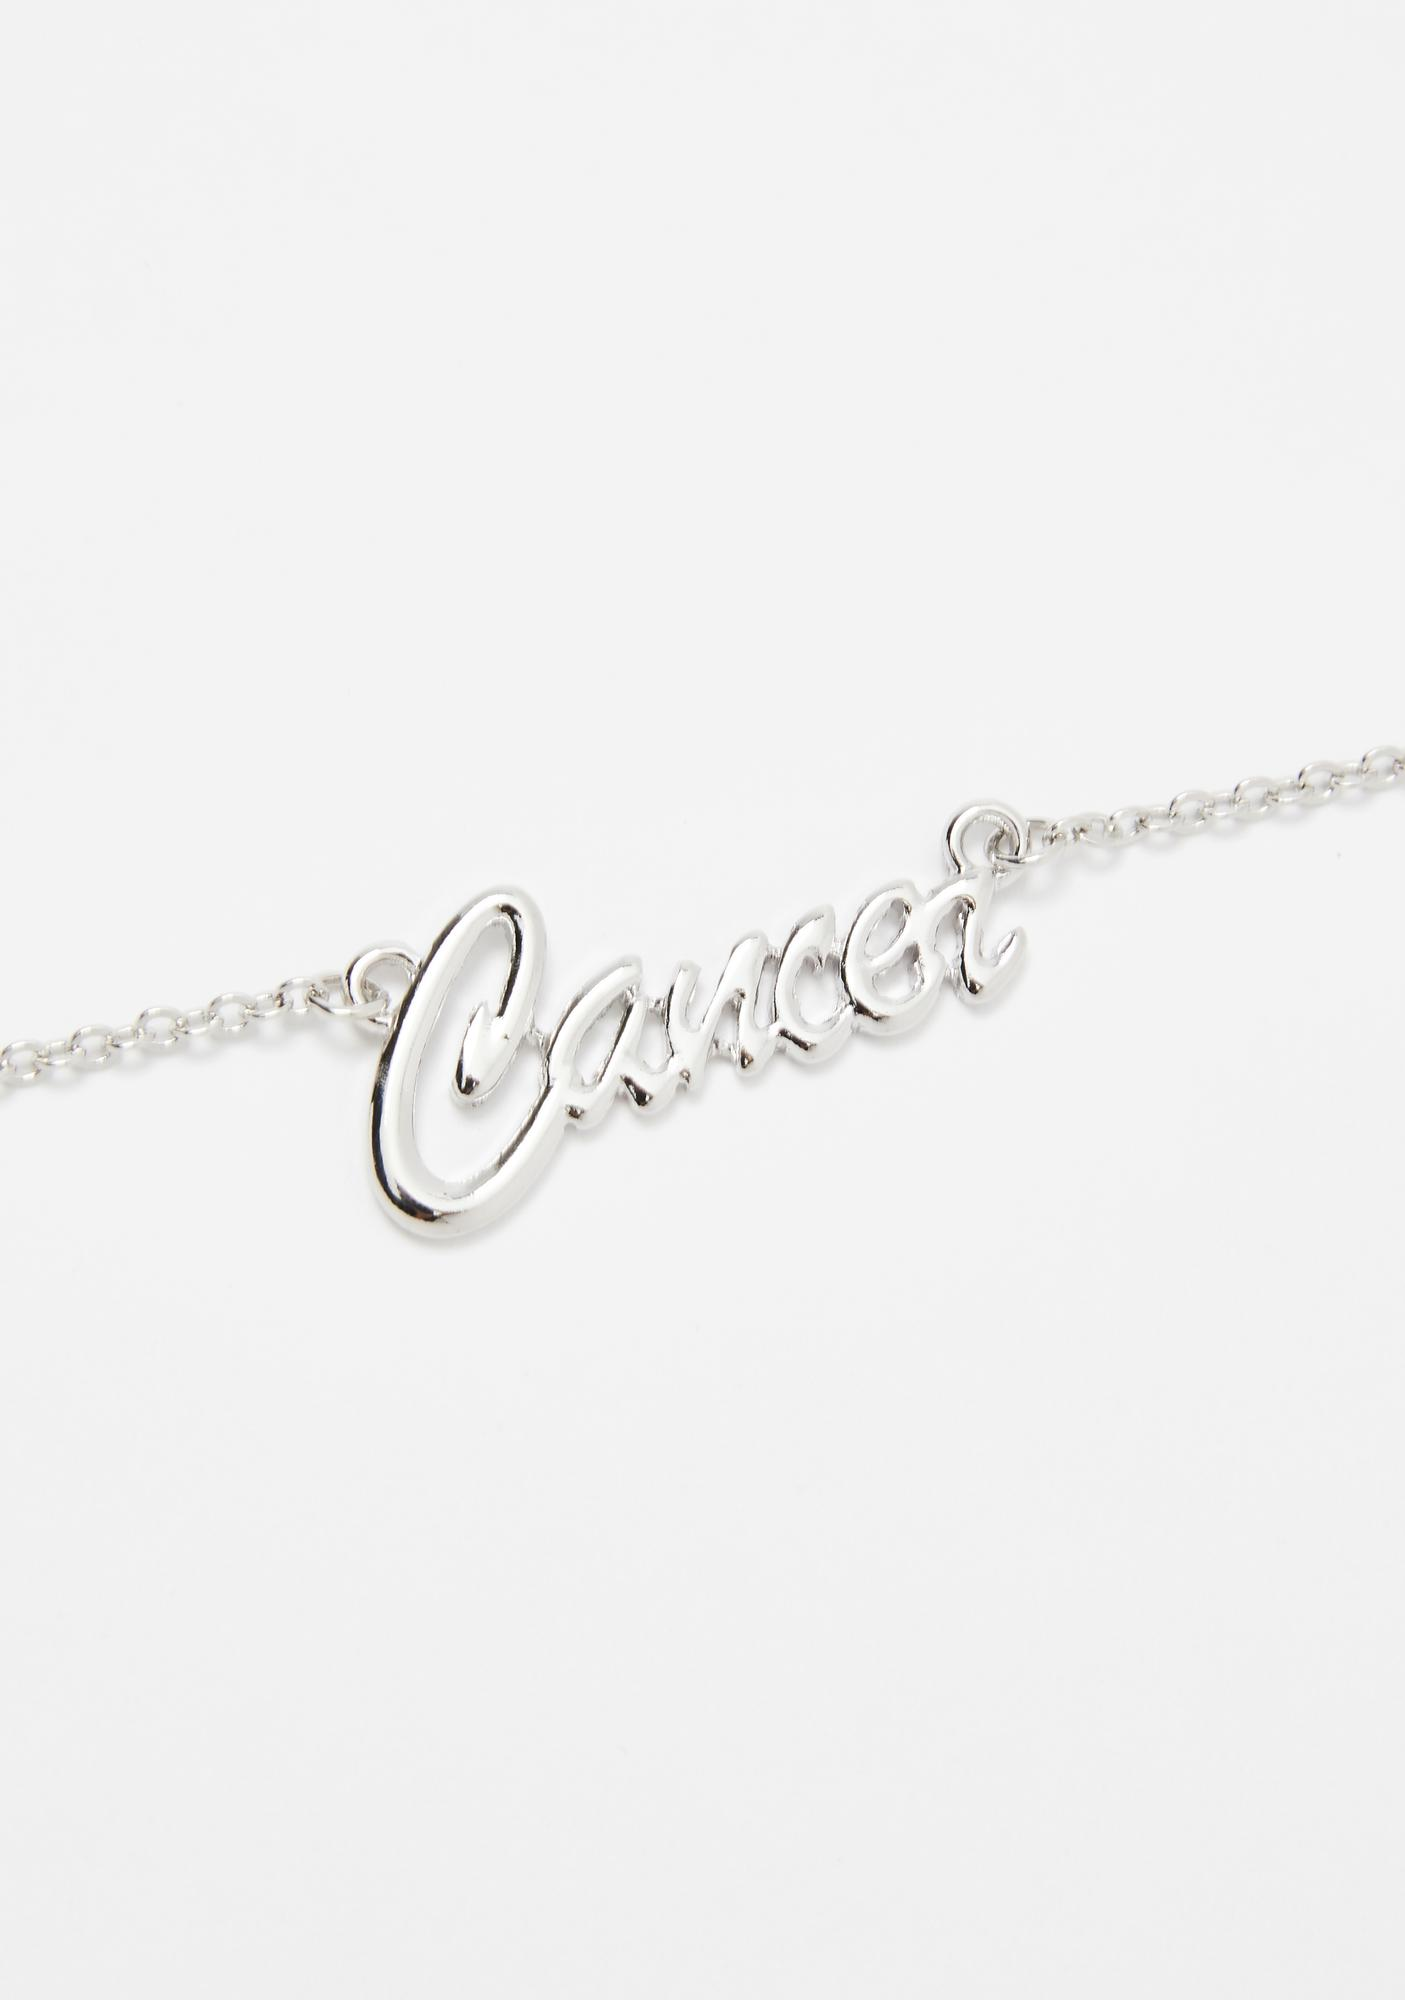 Crybaby Cancer Nameplate Necklace